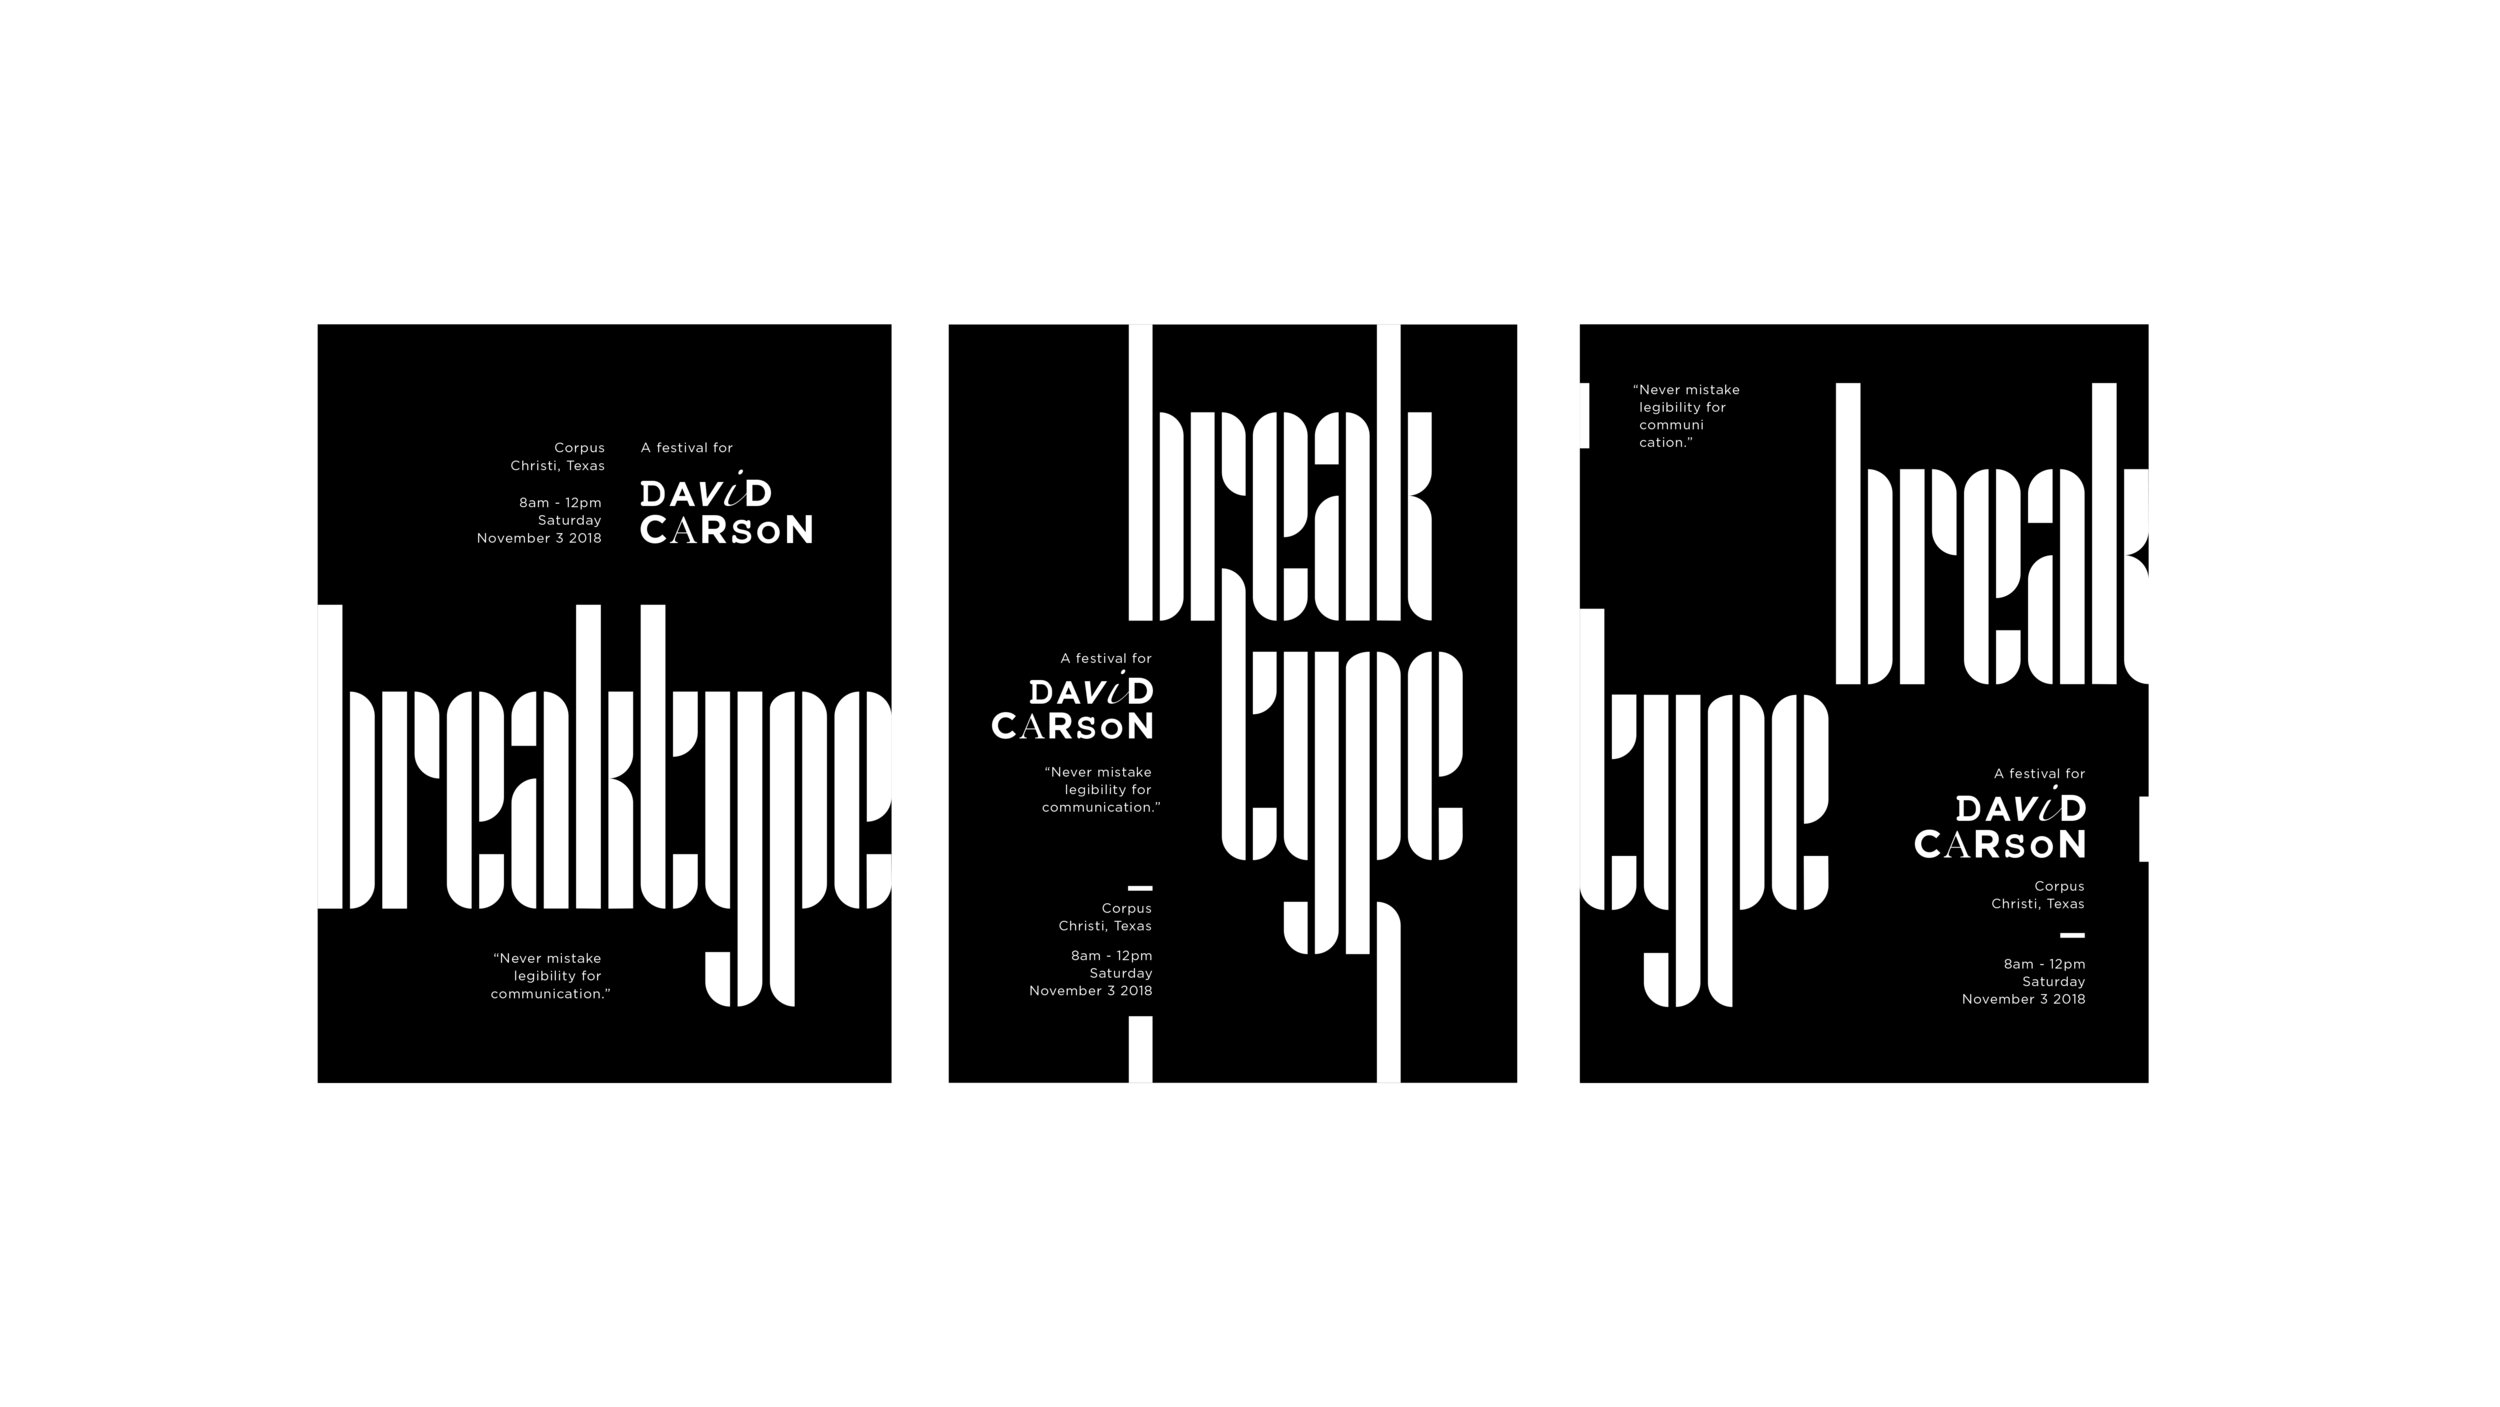 Break type festival poster black and white iteration | Max Li, Freshman